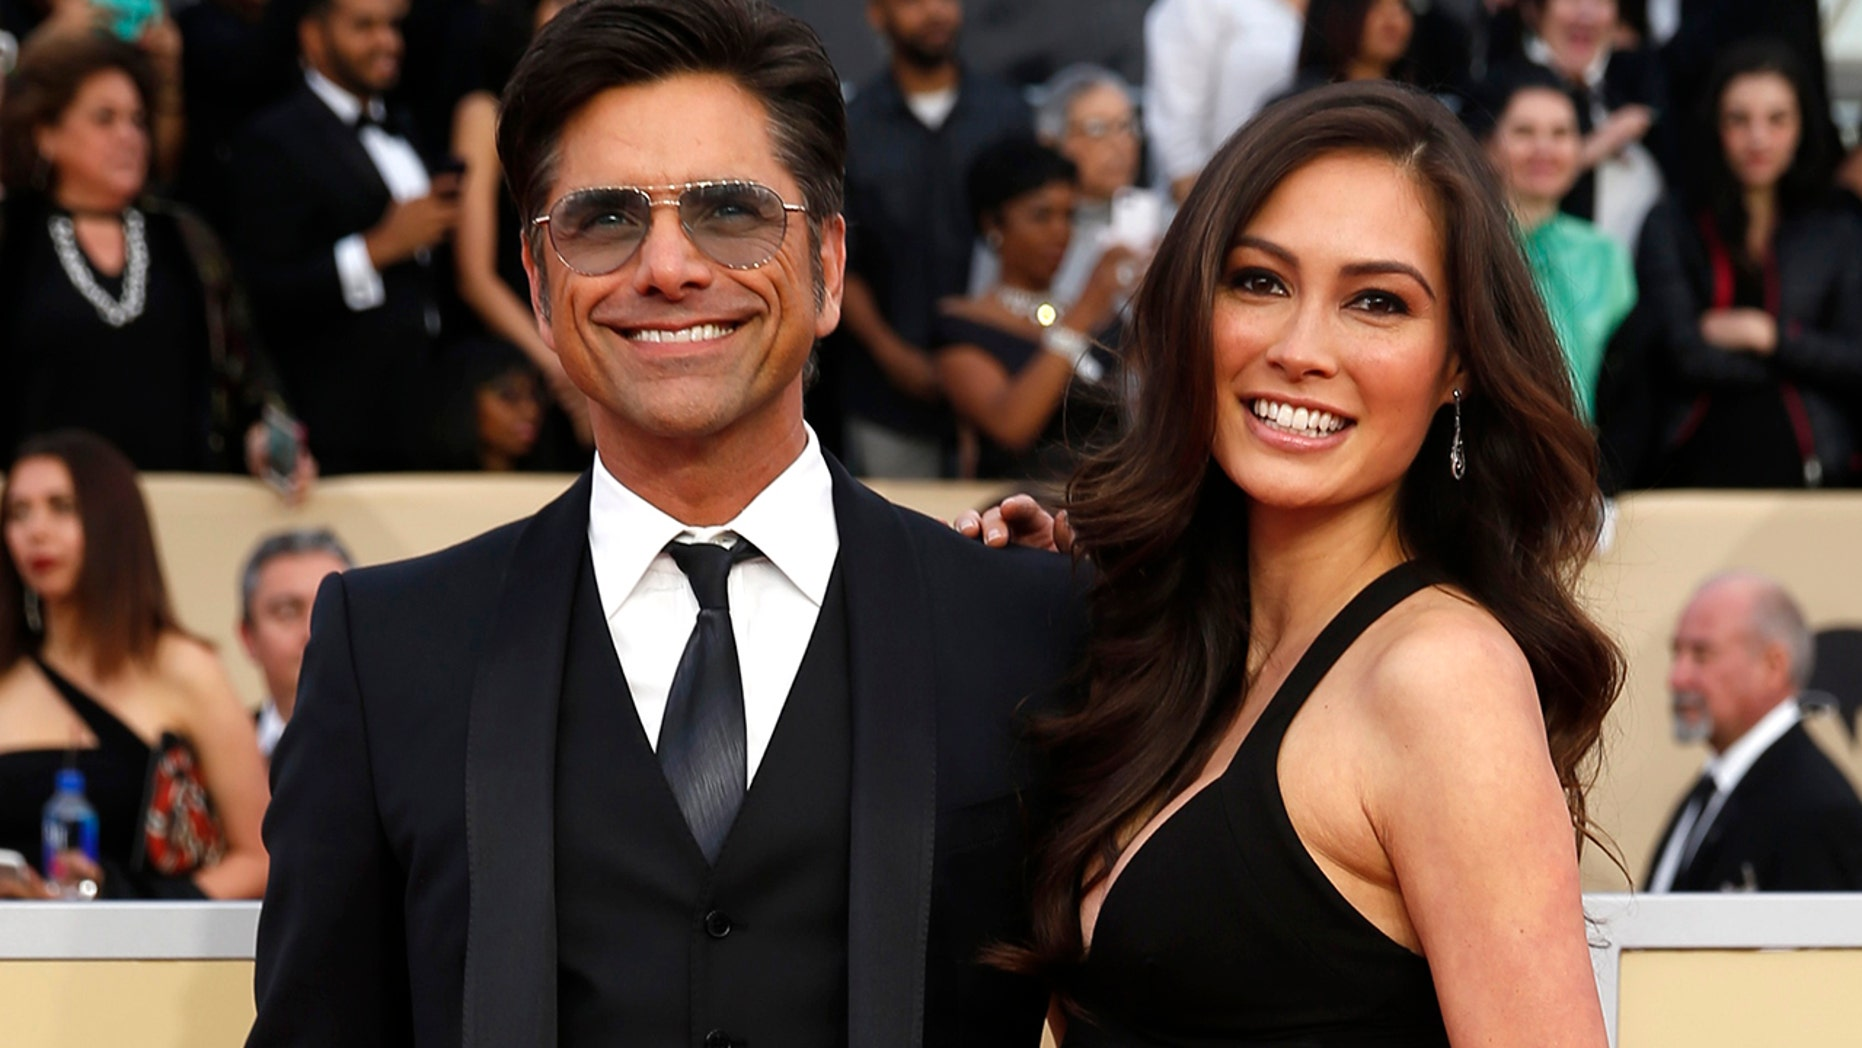 Actor John Stamos and Caitlin McHugh at the 24th Screen Actors Guild Awards.